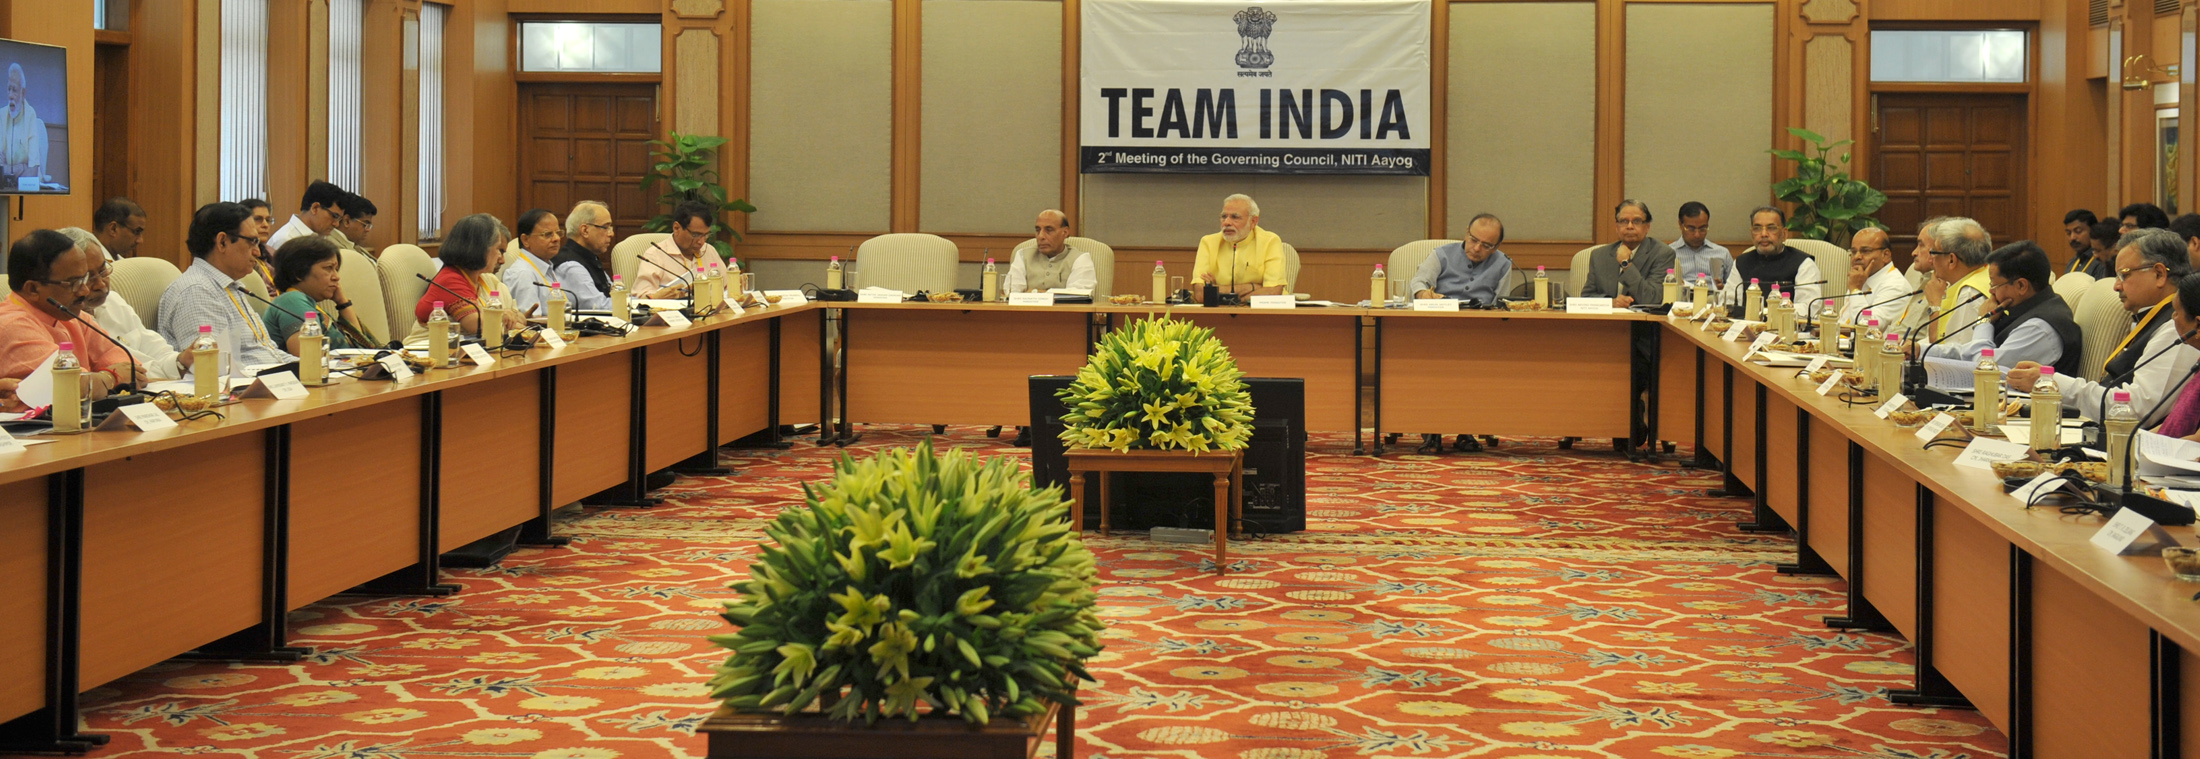 The Prime Minister, Shri Narendra Modi chairing the 2nd meeting of the Governing Council of NITI Aayog, in New Delhi on July 15, 2015.